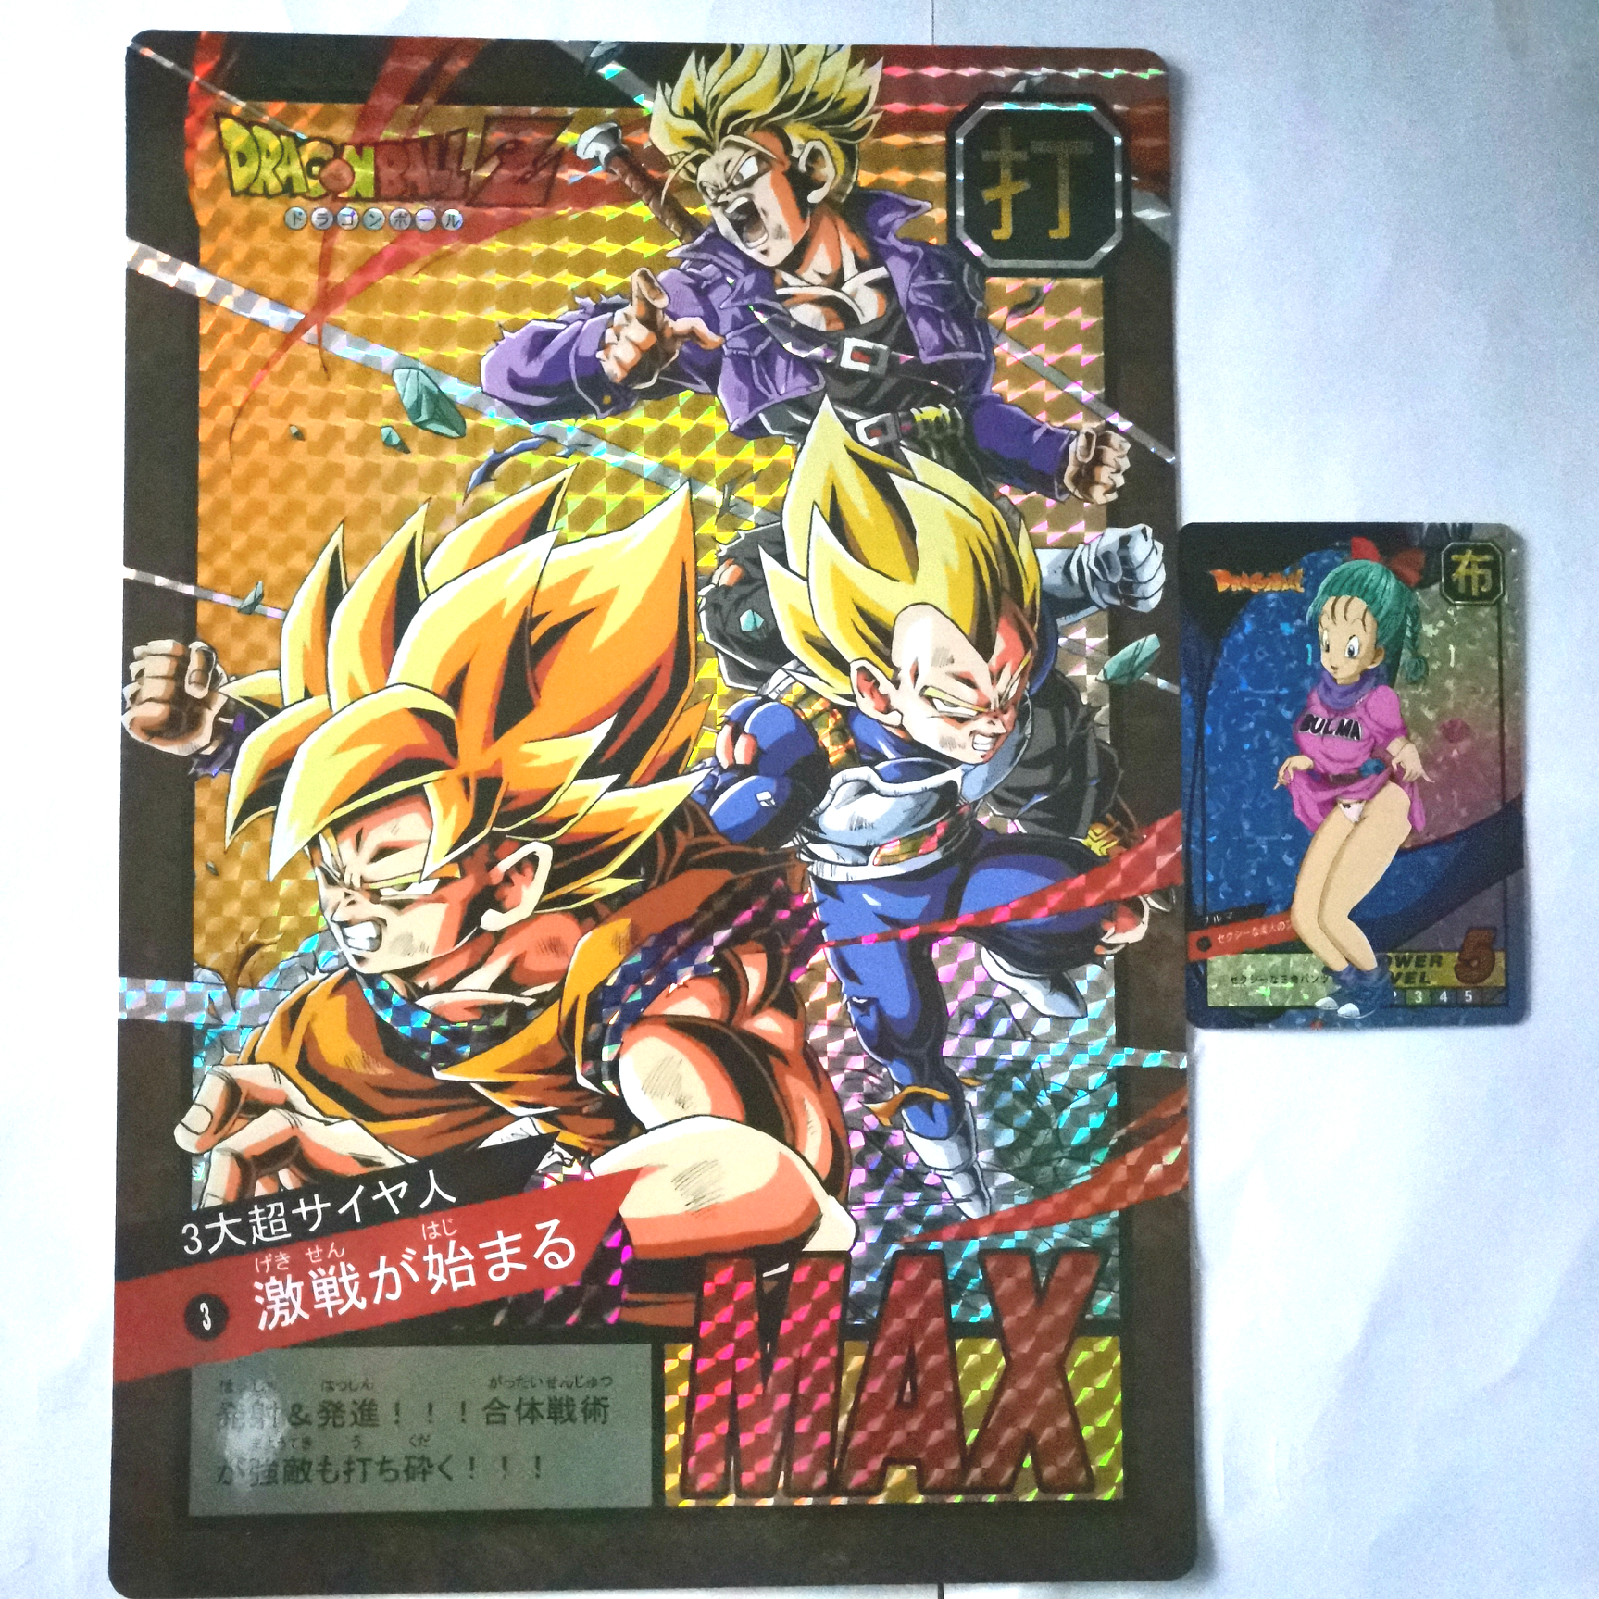 8pcs Big Card Super Dragon Ball Length 26cm Width 18cm Heroes Battle Ultra Instinct Goku Super Game Collection Anime Cards8pcs Big Card Super Dragon Ball Length 26cm Width 18cm Heroes Battle Ultra Instinct Goku Super Game Collection Anime Cards